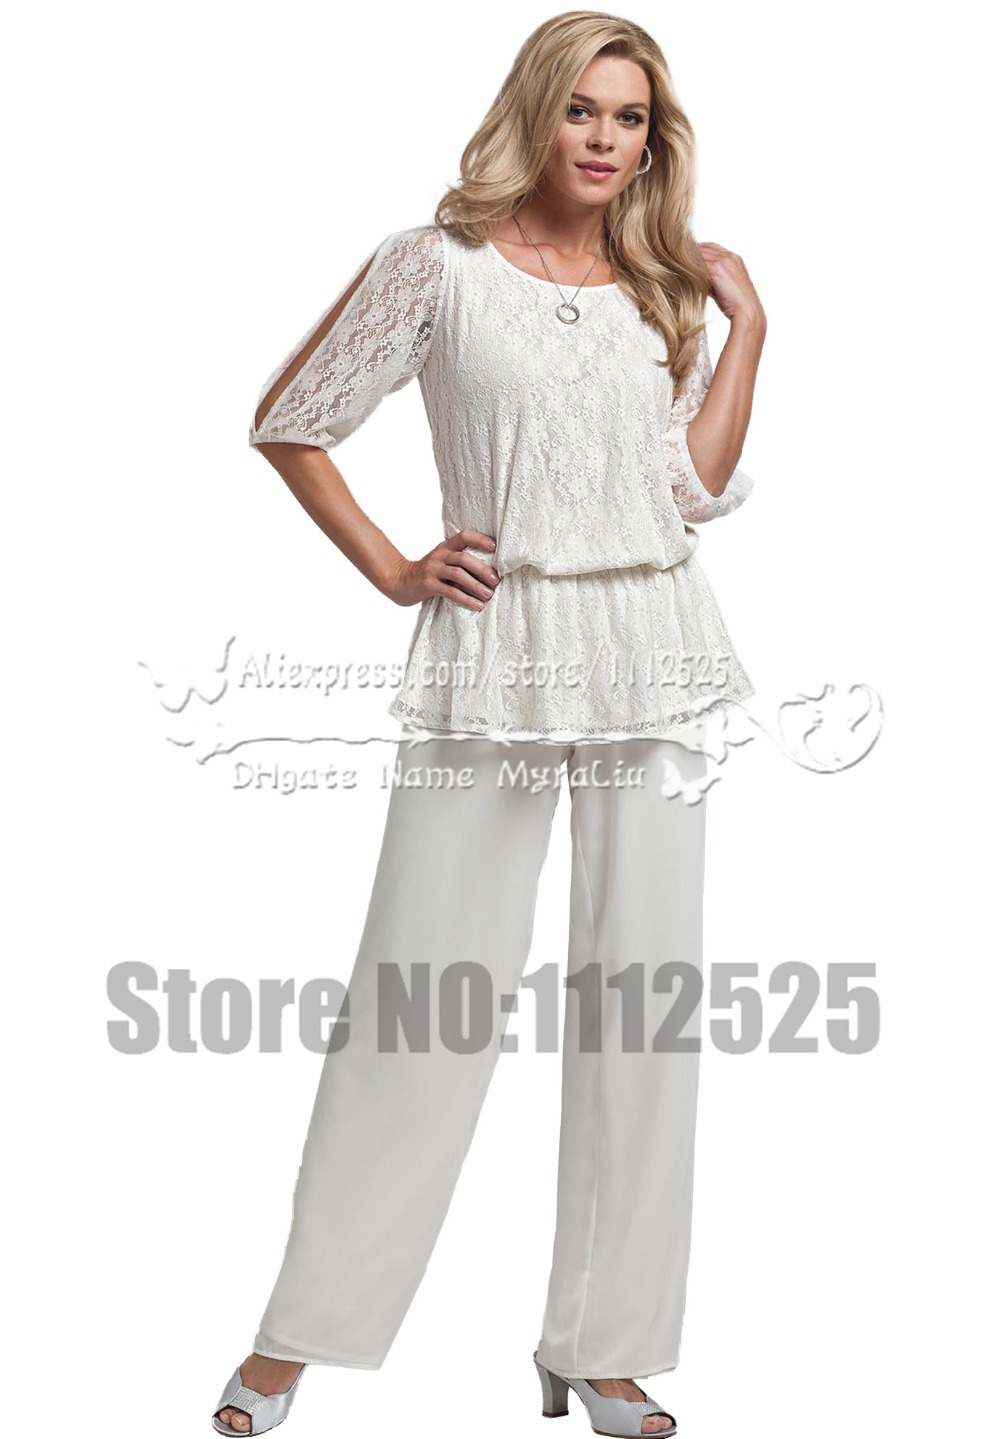 Amp1009 summer white two piece mother of the bride pants for Dresses for mother of groom for summer wedding